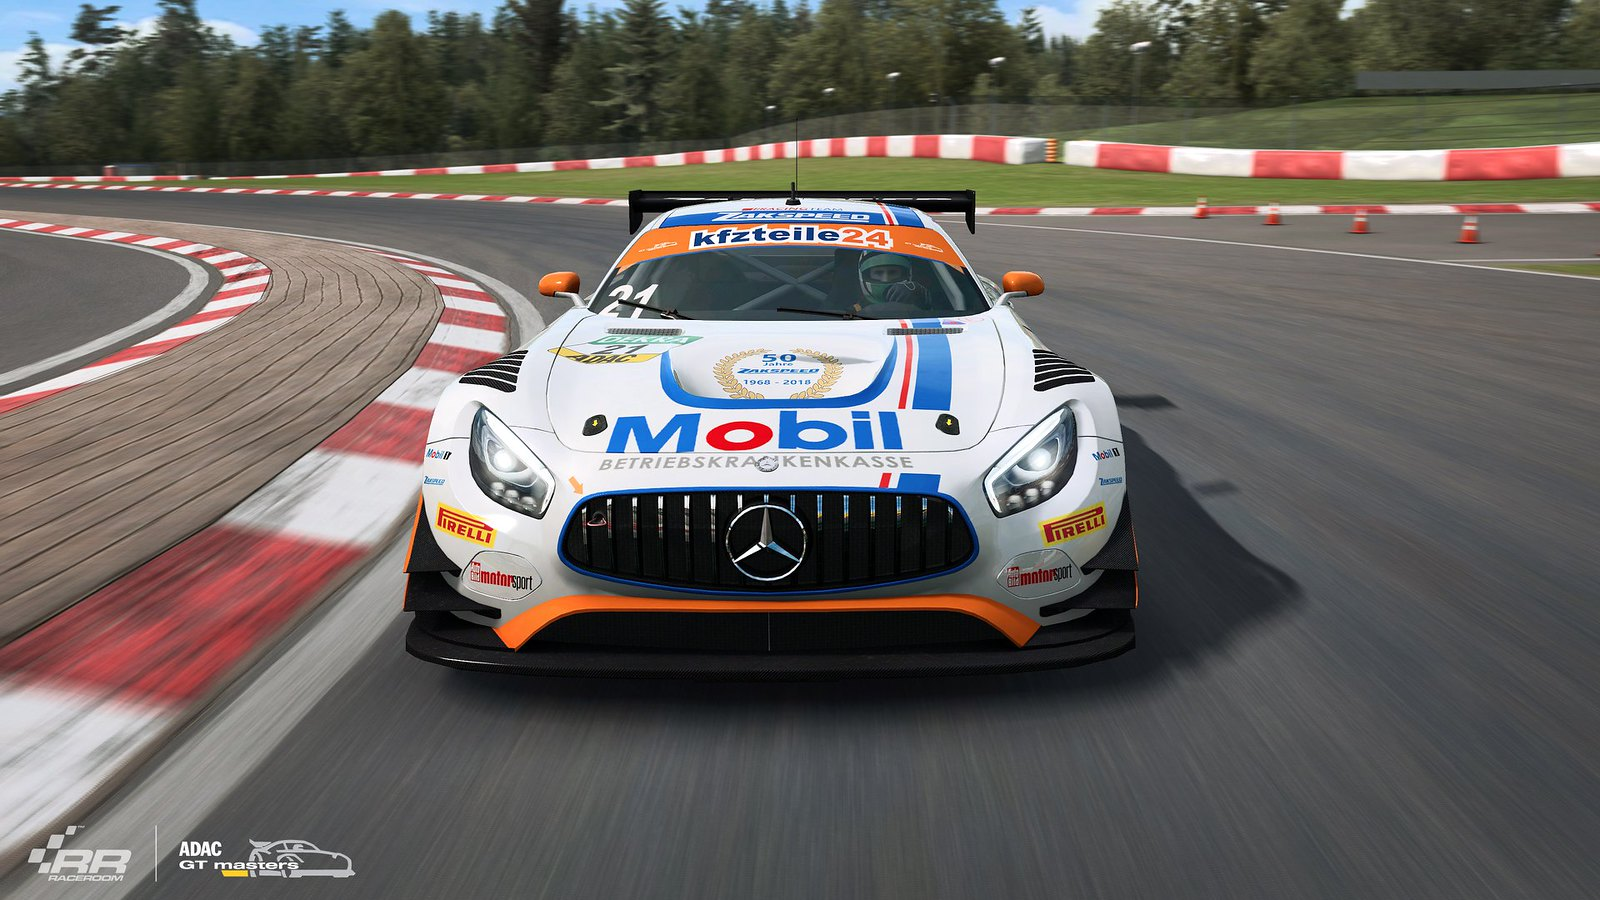 2 RaceRooom Mercedes-AMG teams of ADAC GT Masters 2018